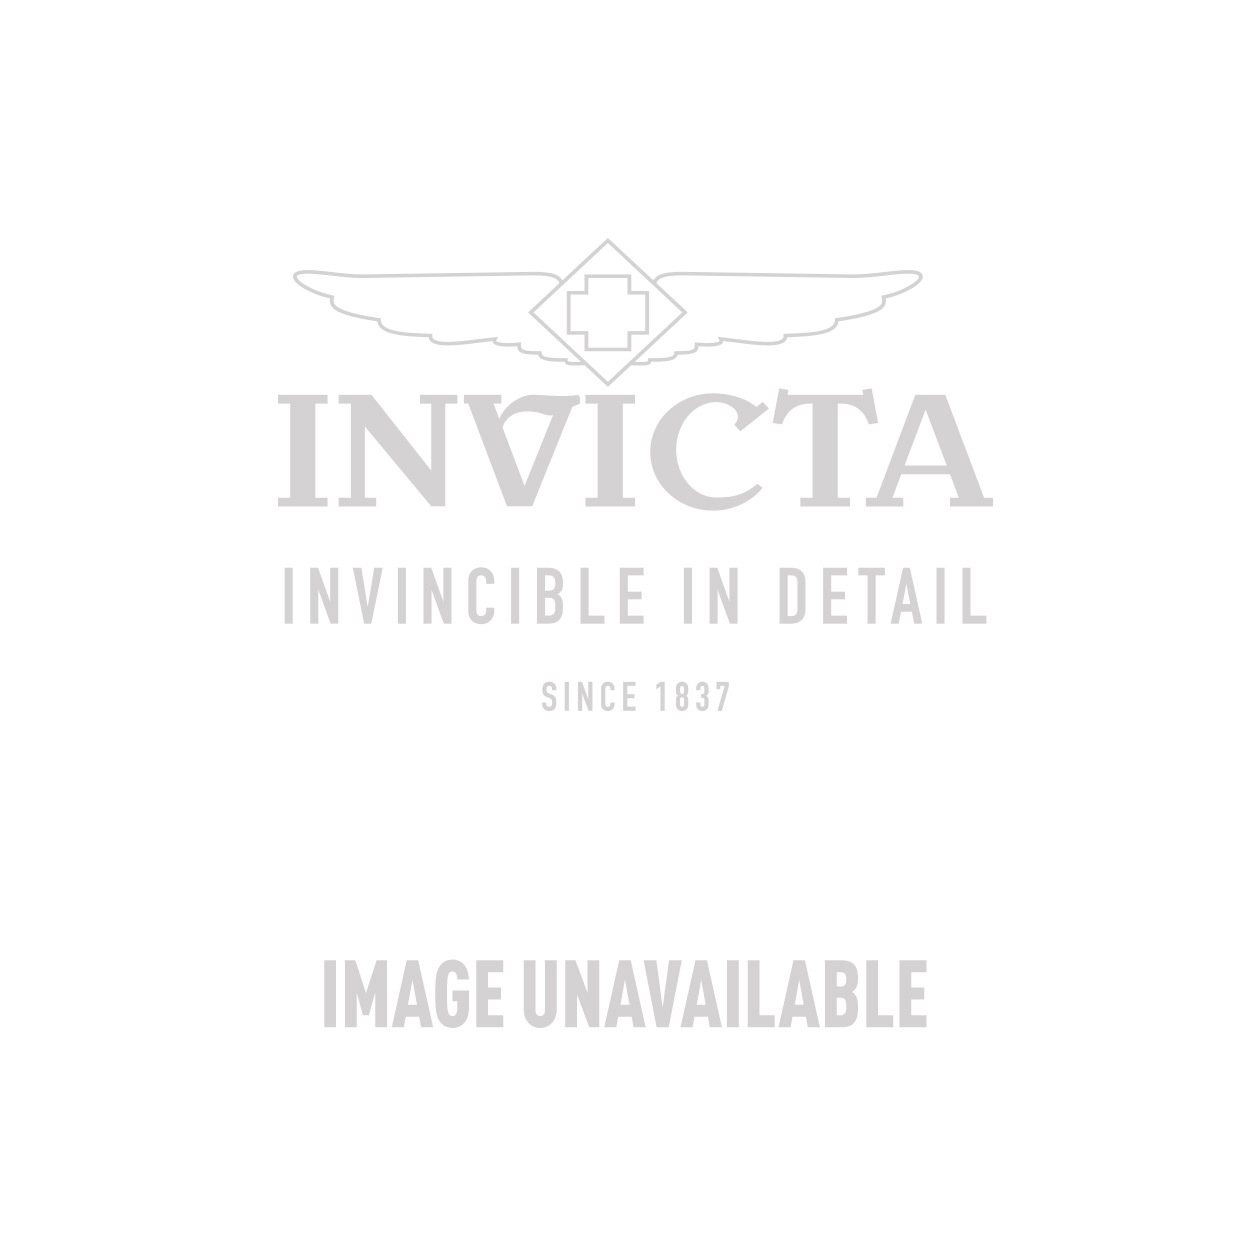 Invicta Sea Hunter Swiss Made Quartz Watch - Stainless Steel case Stainless Steel band - Model 12400